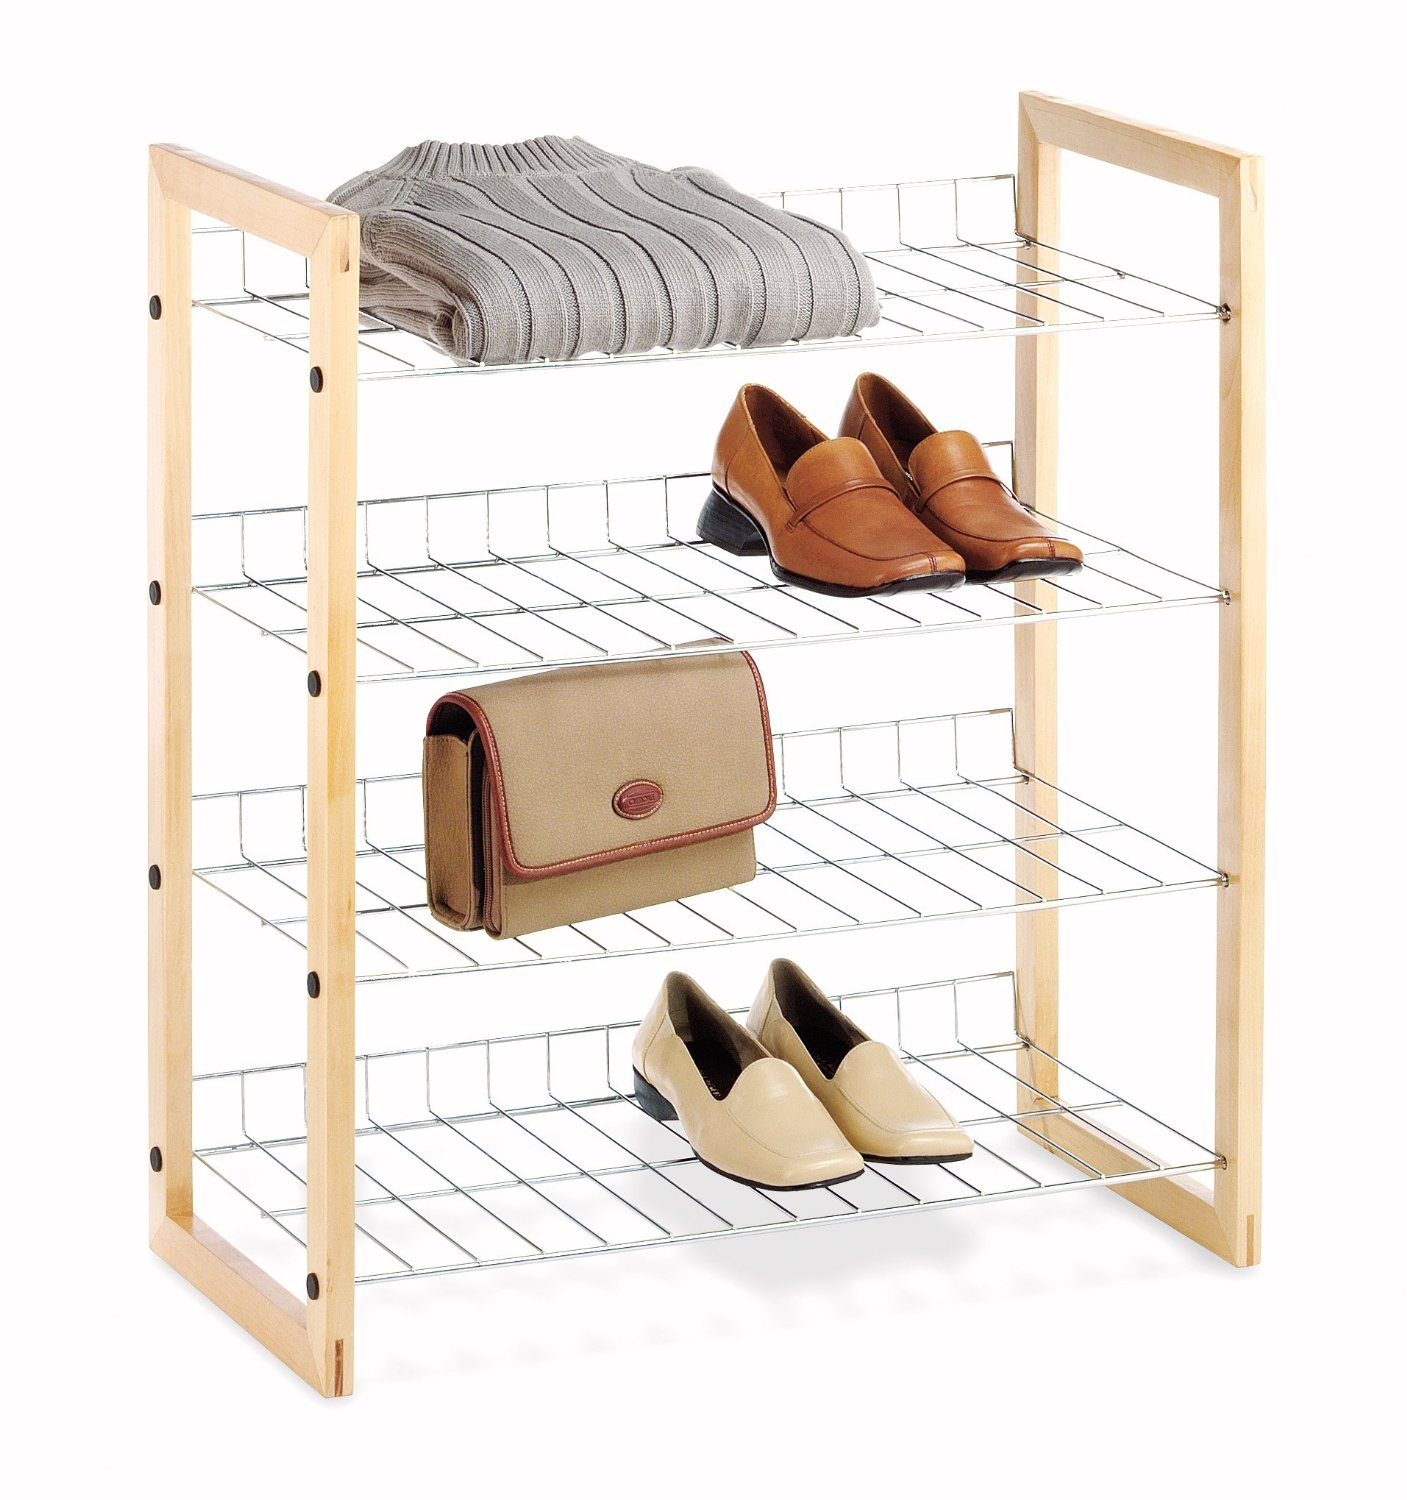 Whitmor 4 Tier Shelves – Review of Closet Wire Shelves with Chrome ...